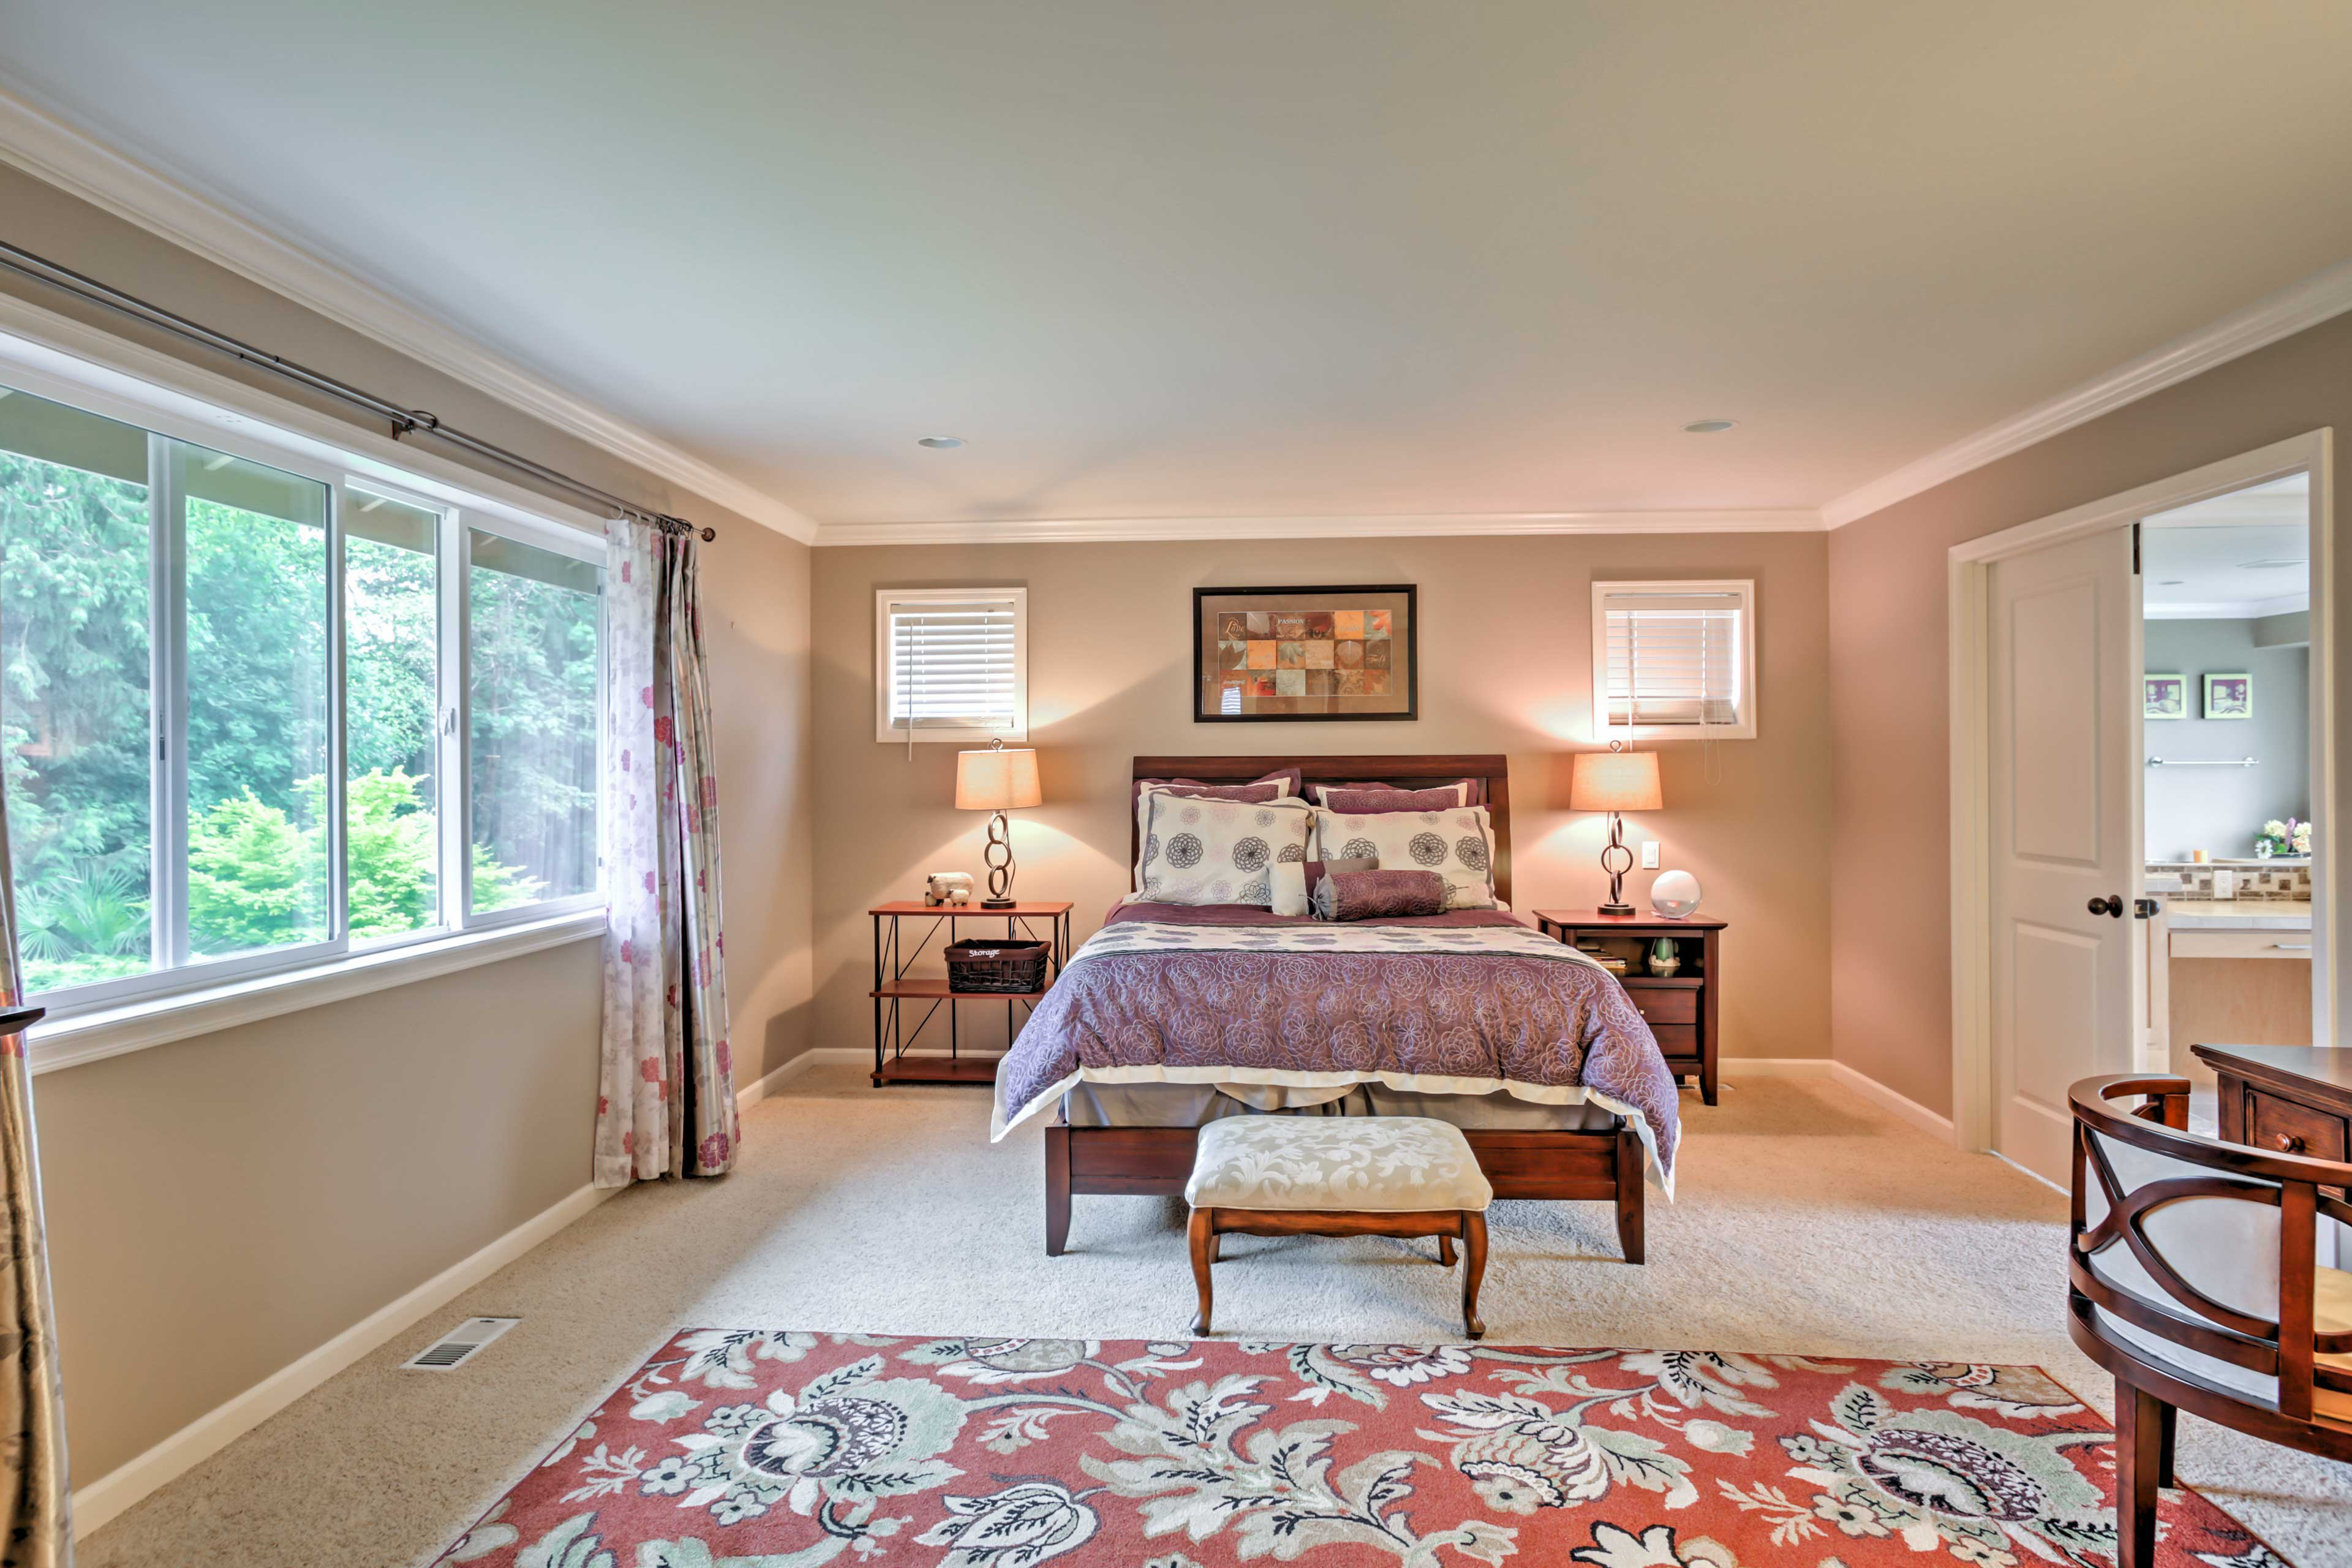 Wake up feeling refreshed after a night spent in this plush queen bed.